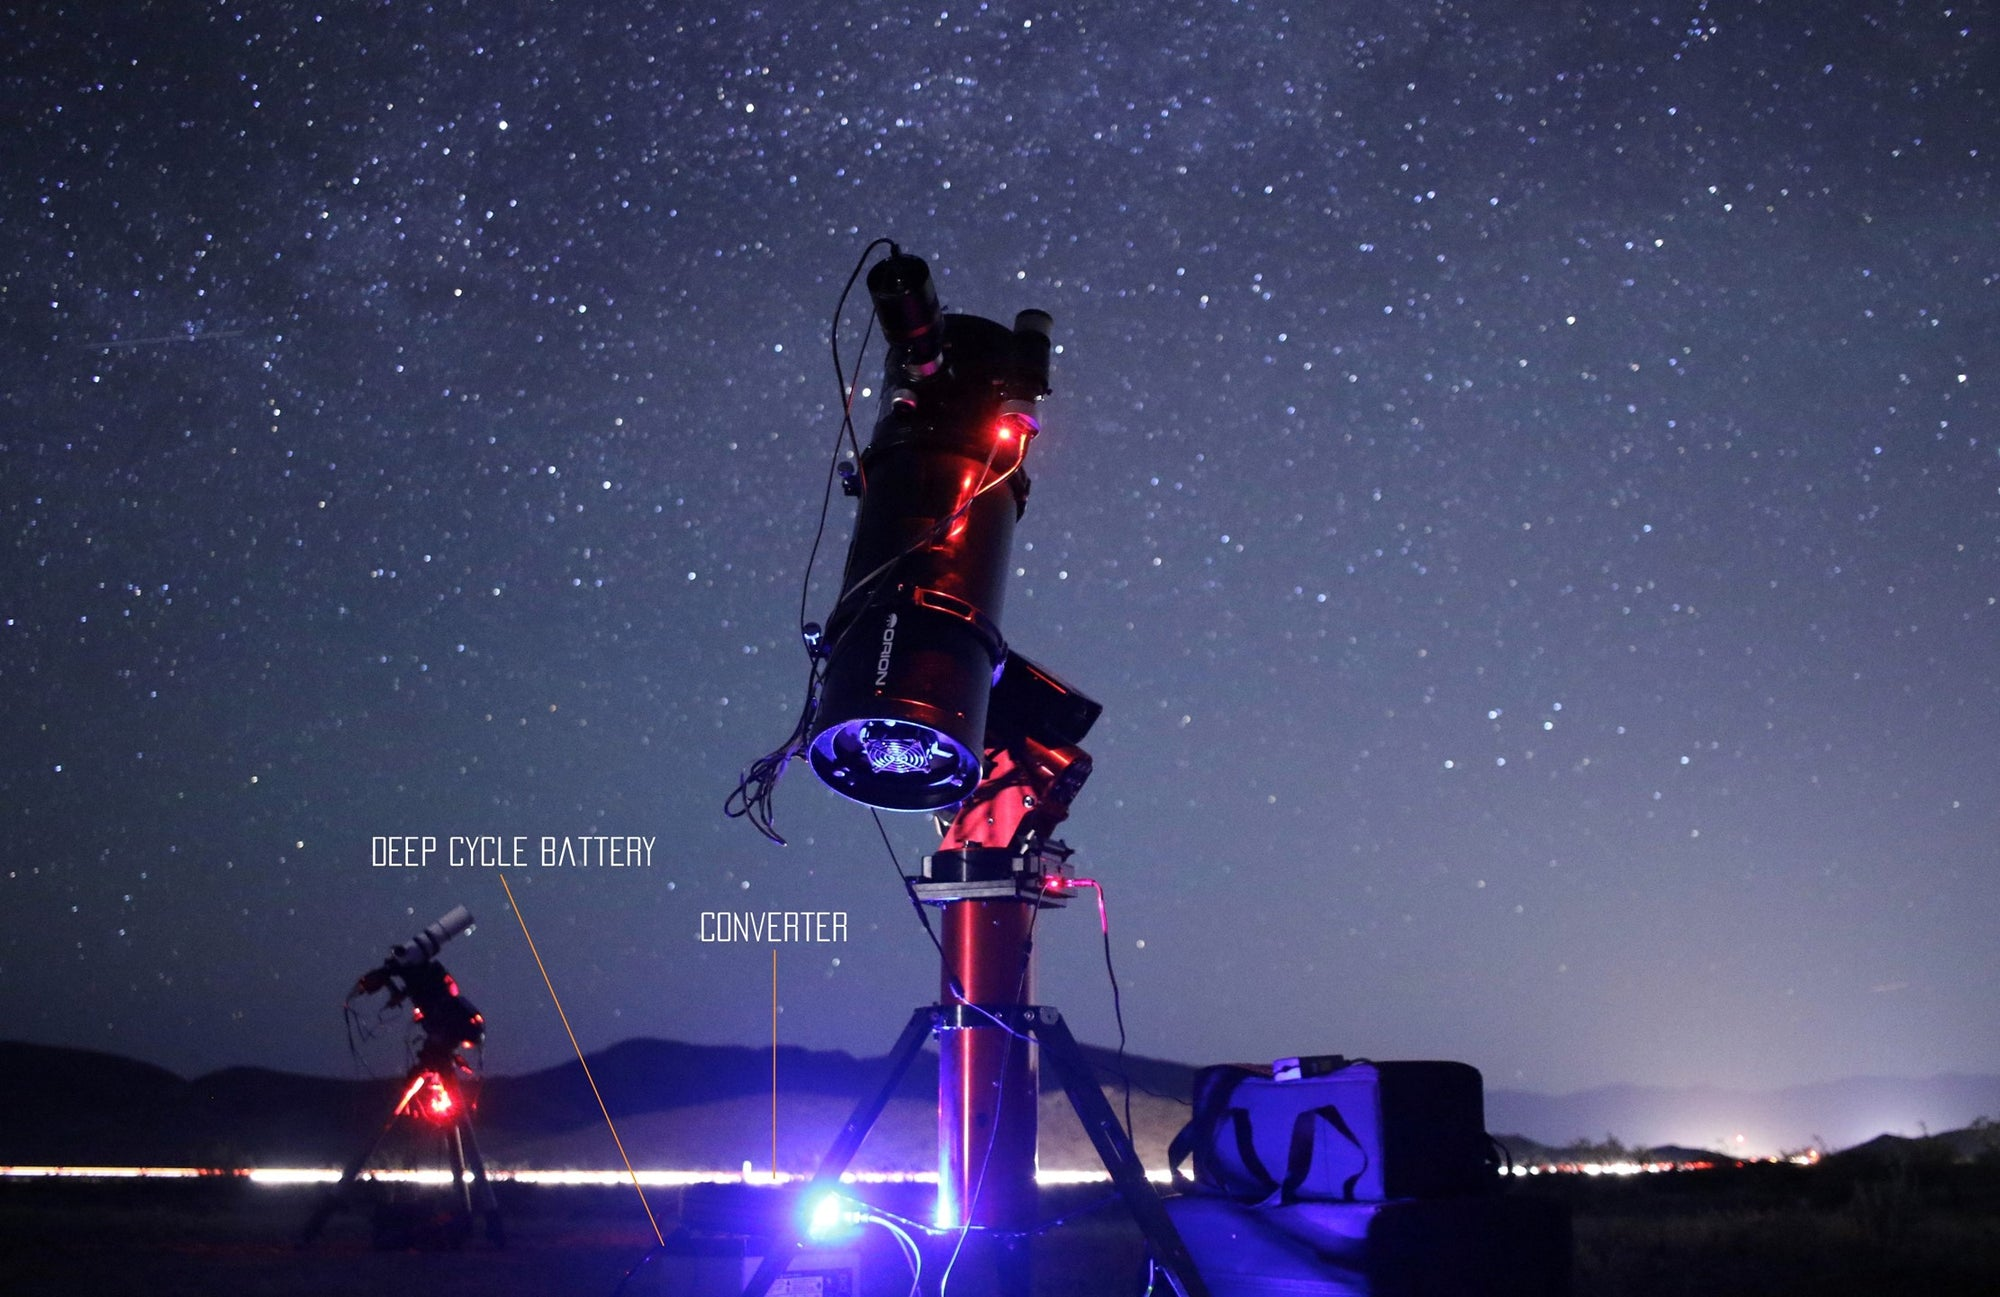 Telescope Power for Astrophotography - at Home & On the Go